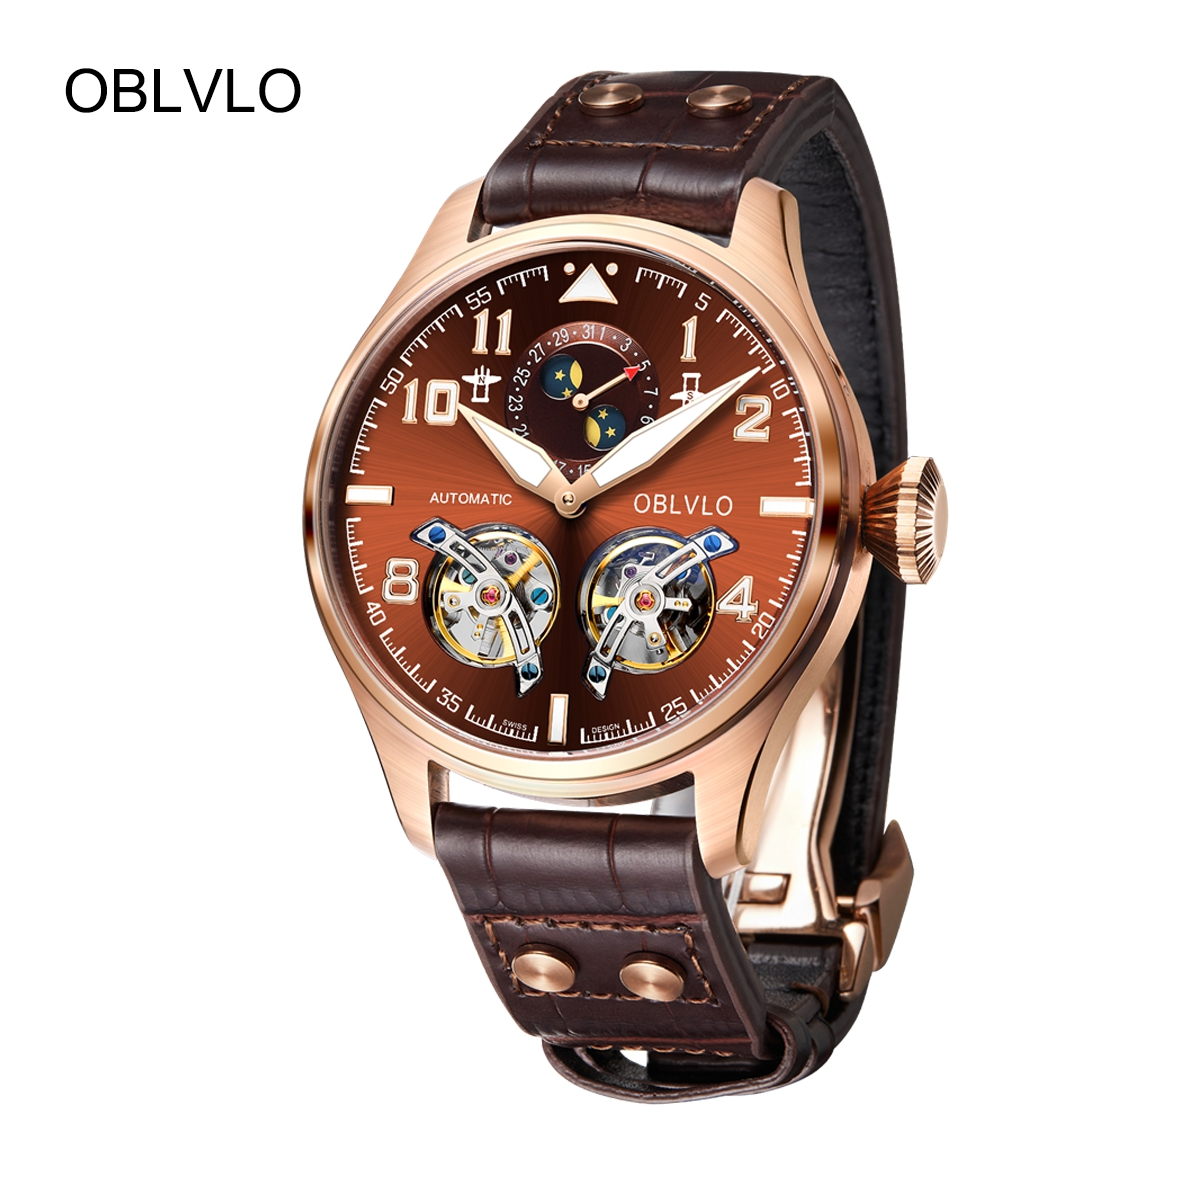 OBLVLO Mens Luxury Tourbillon Watches Rose Gold Automatic Watches Date Leather Strap Watch OBL8232-PSS